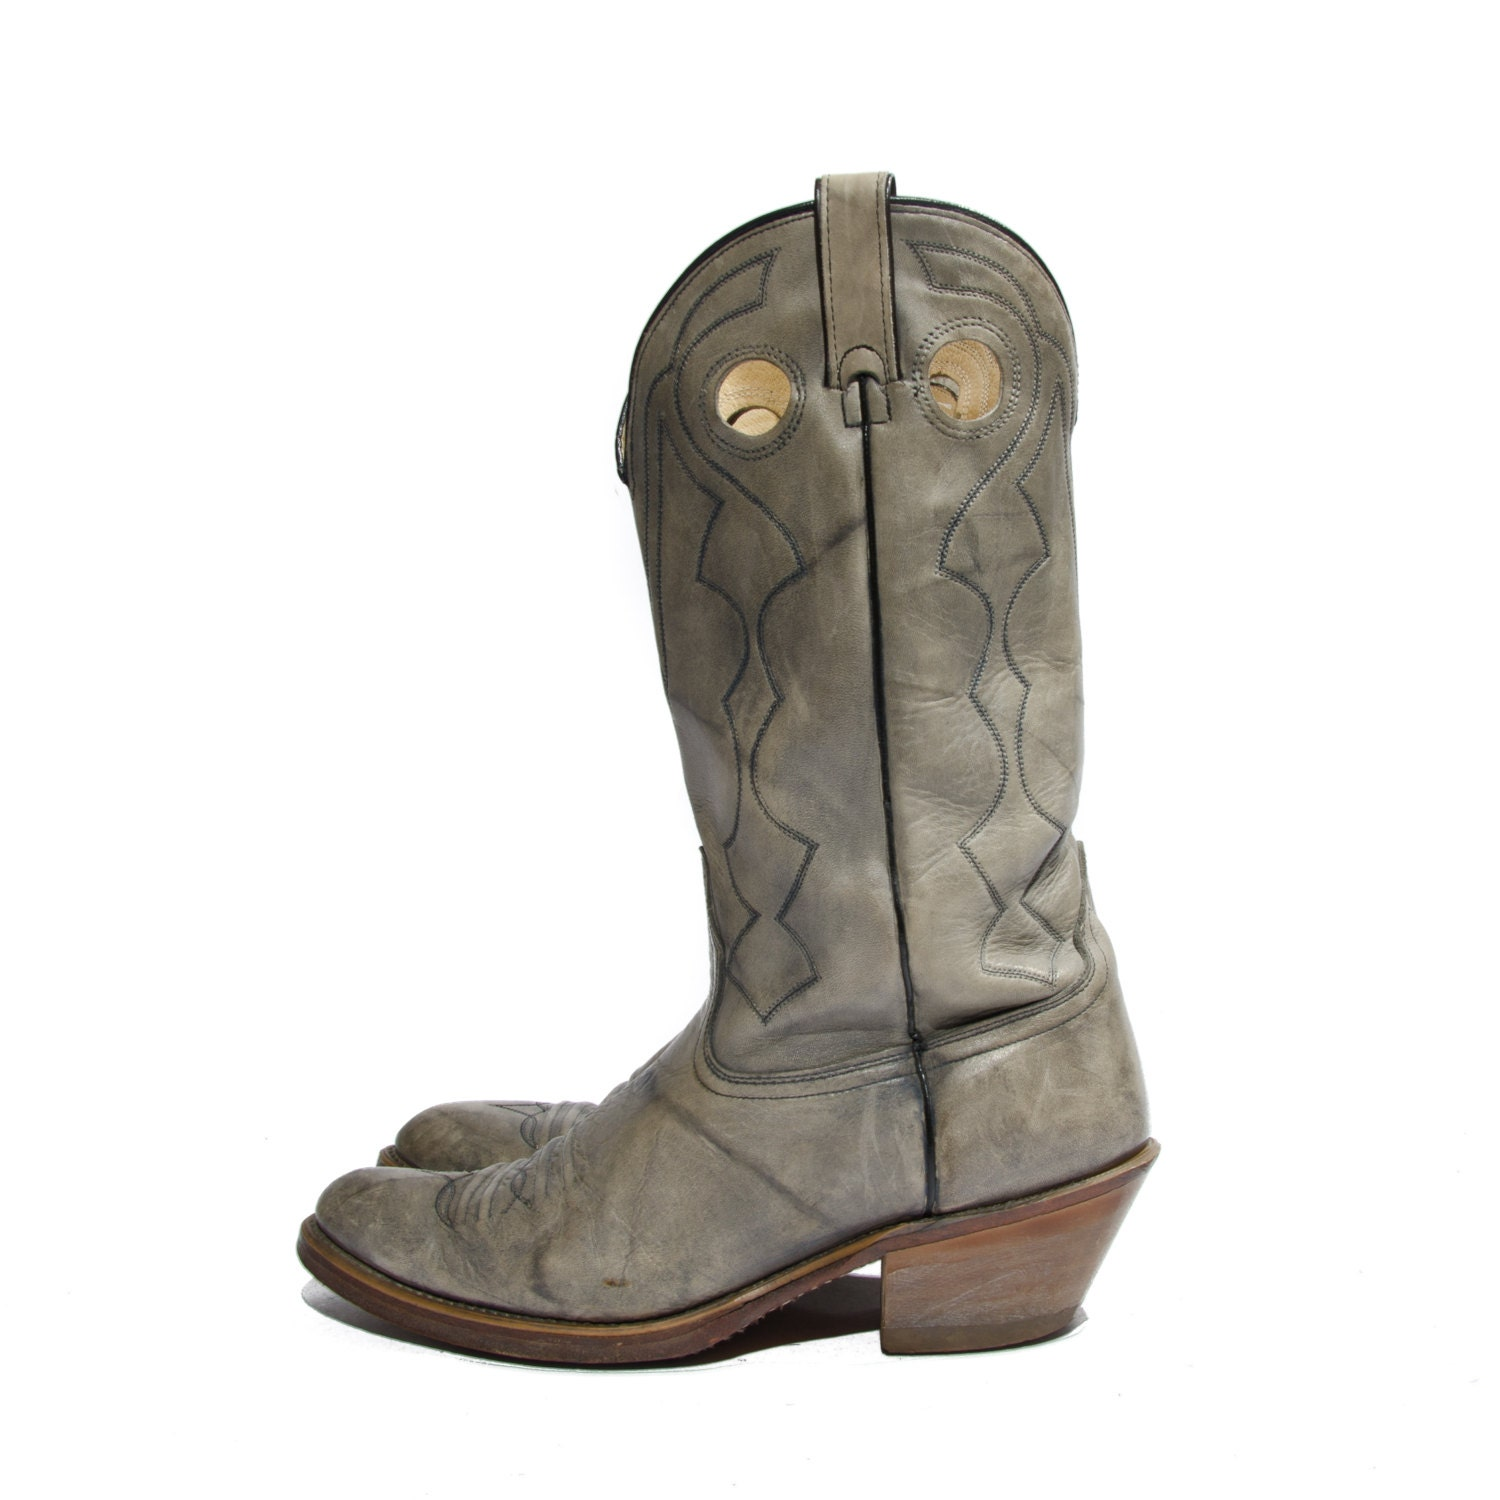 s gray acme western cowboy boots size 11 by